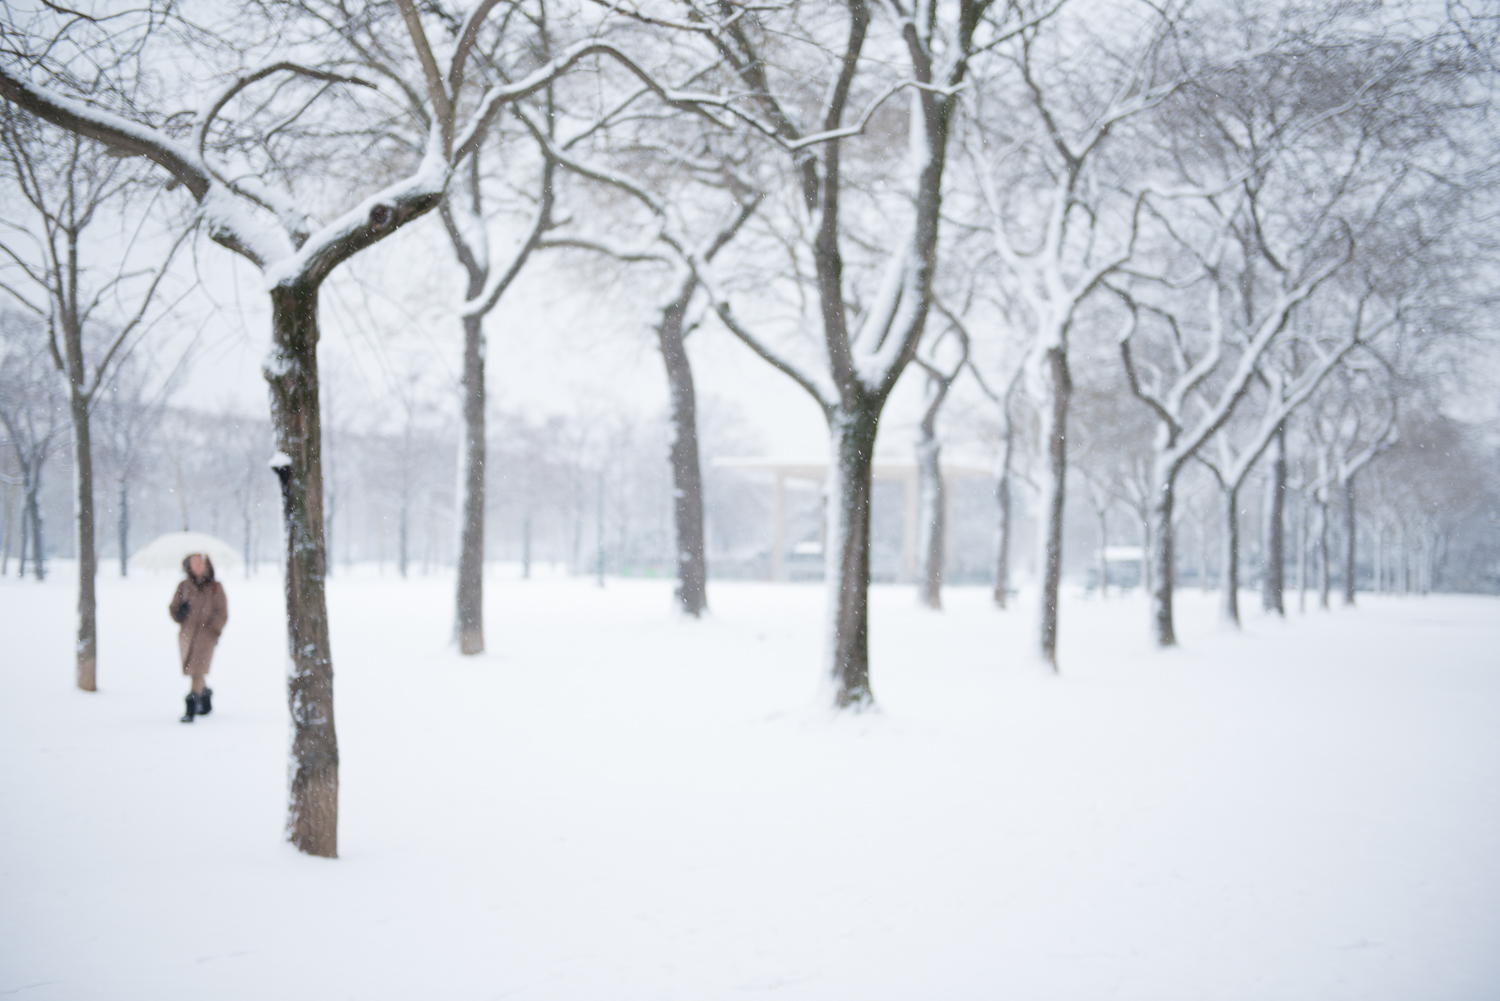 Blizzard in Paris - 8